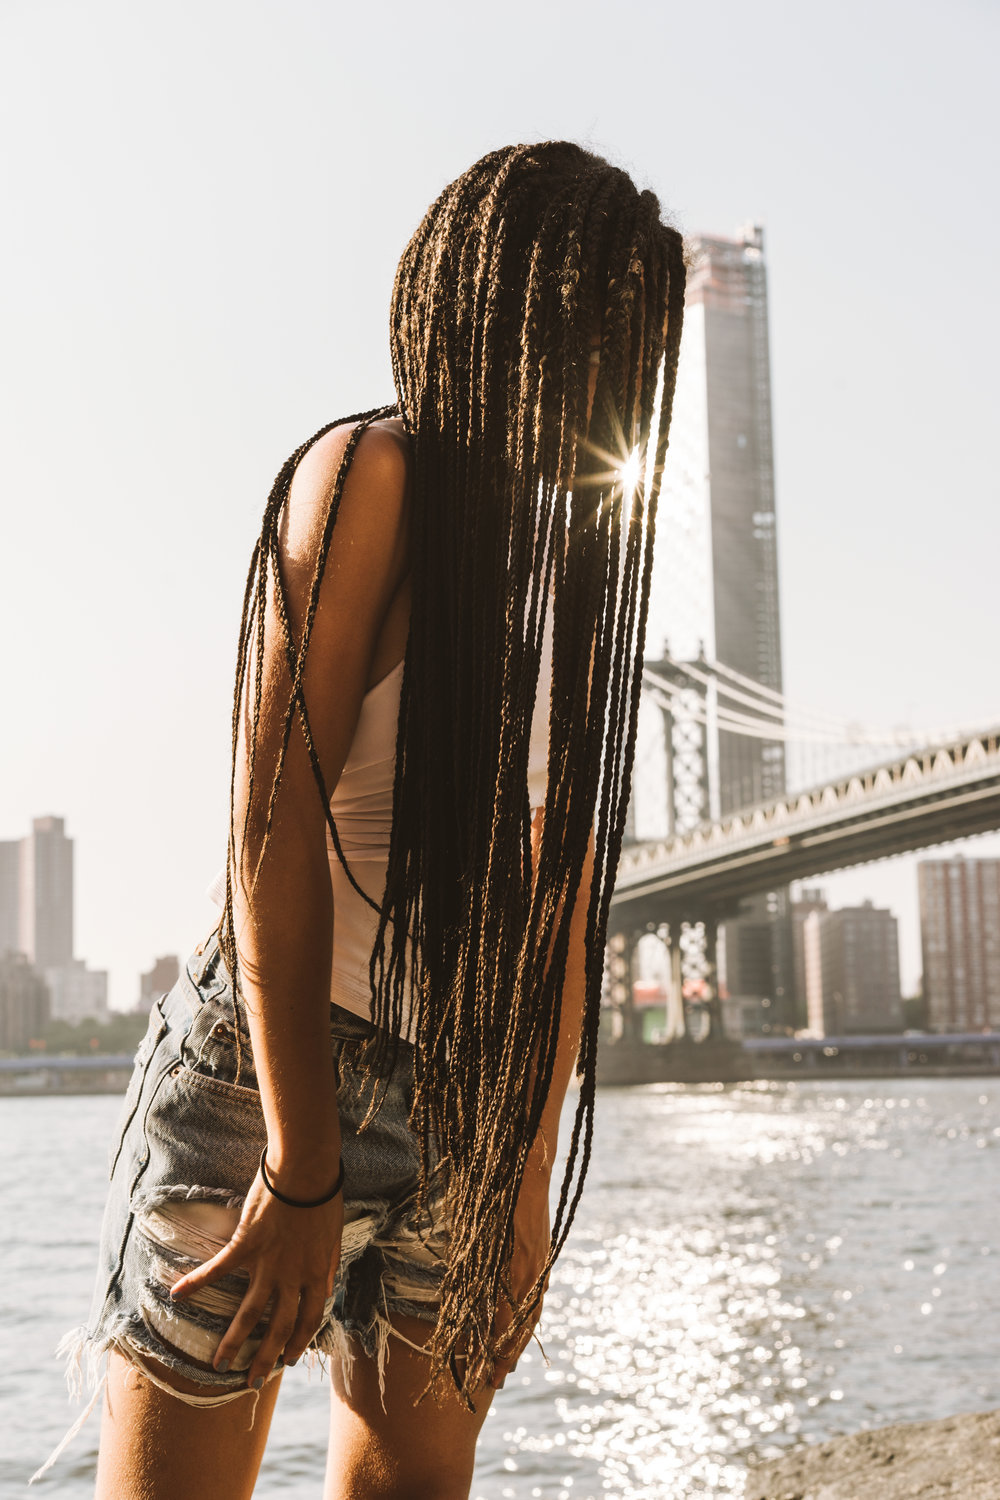 Michelle McSwain Photography Portraits Braids New York Brooklyn Bridge African-American Female